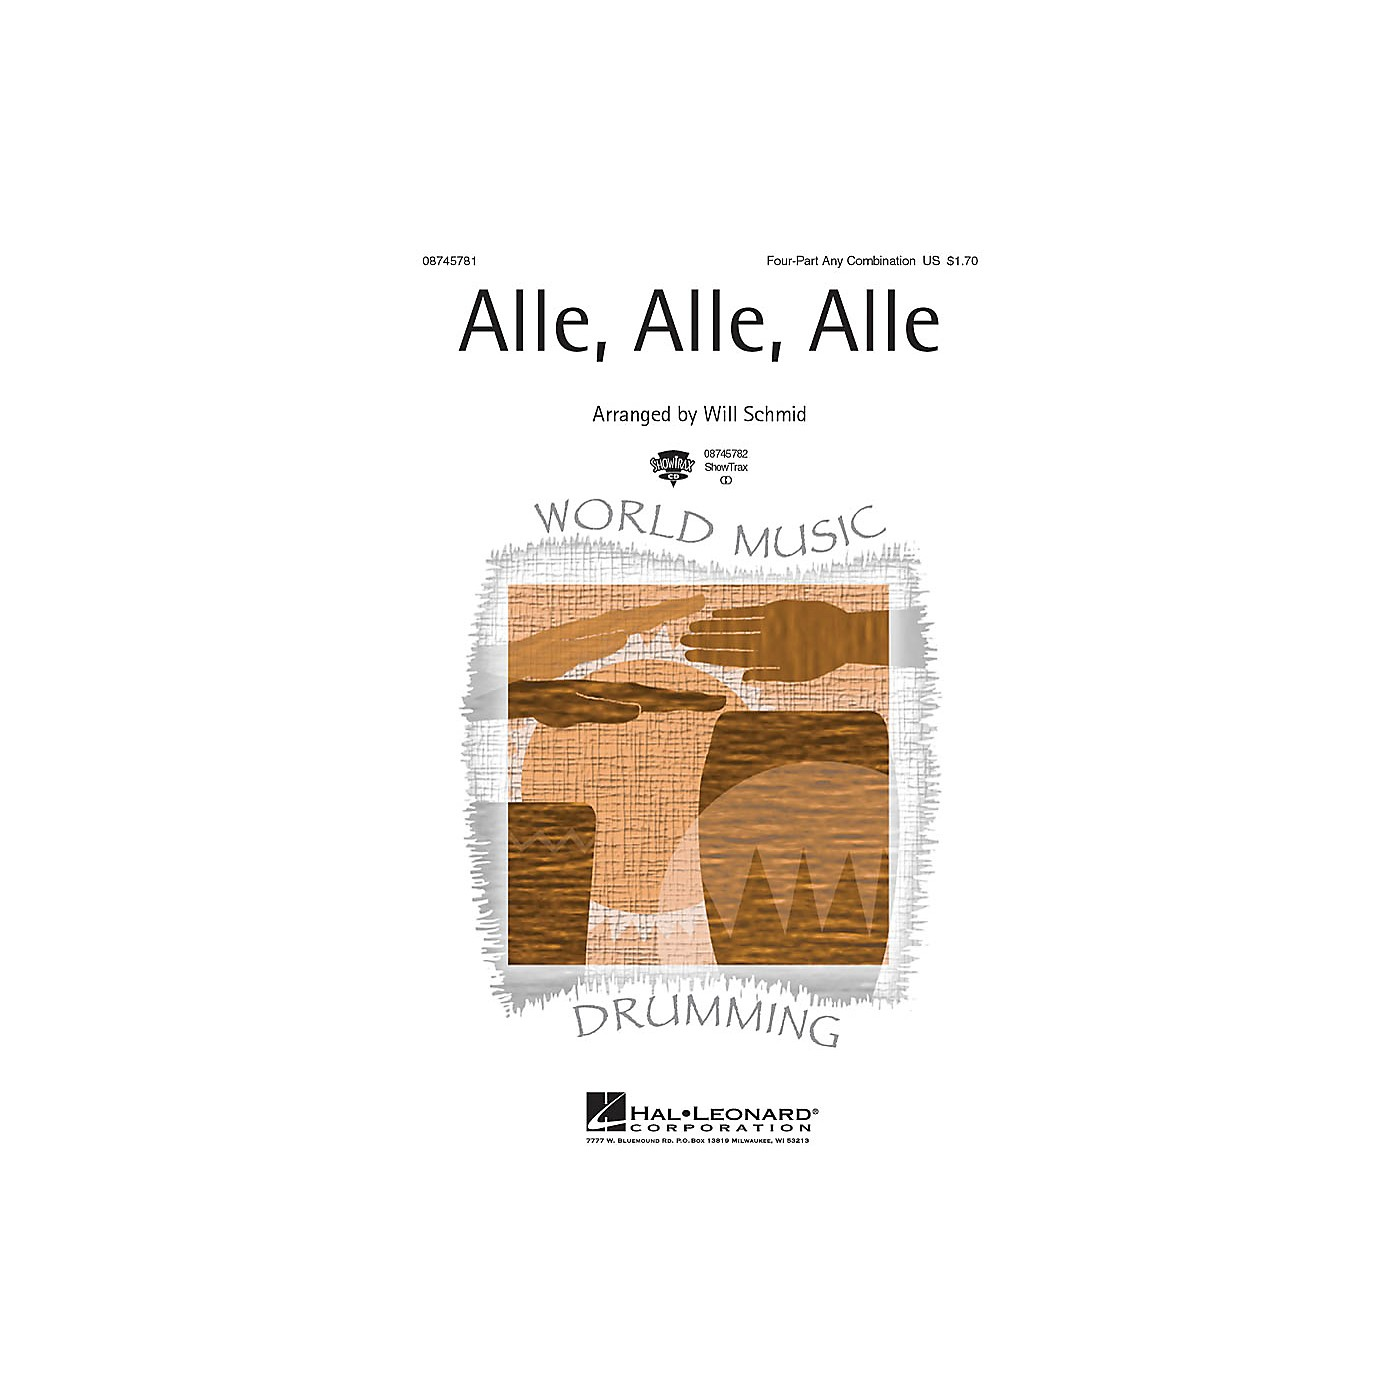 Hal Leonard Alle, Alle, Alle 4 Part Any Combination arranged by Will Schmid thumbnail